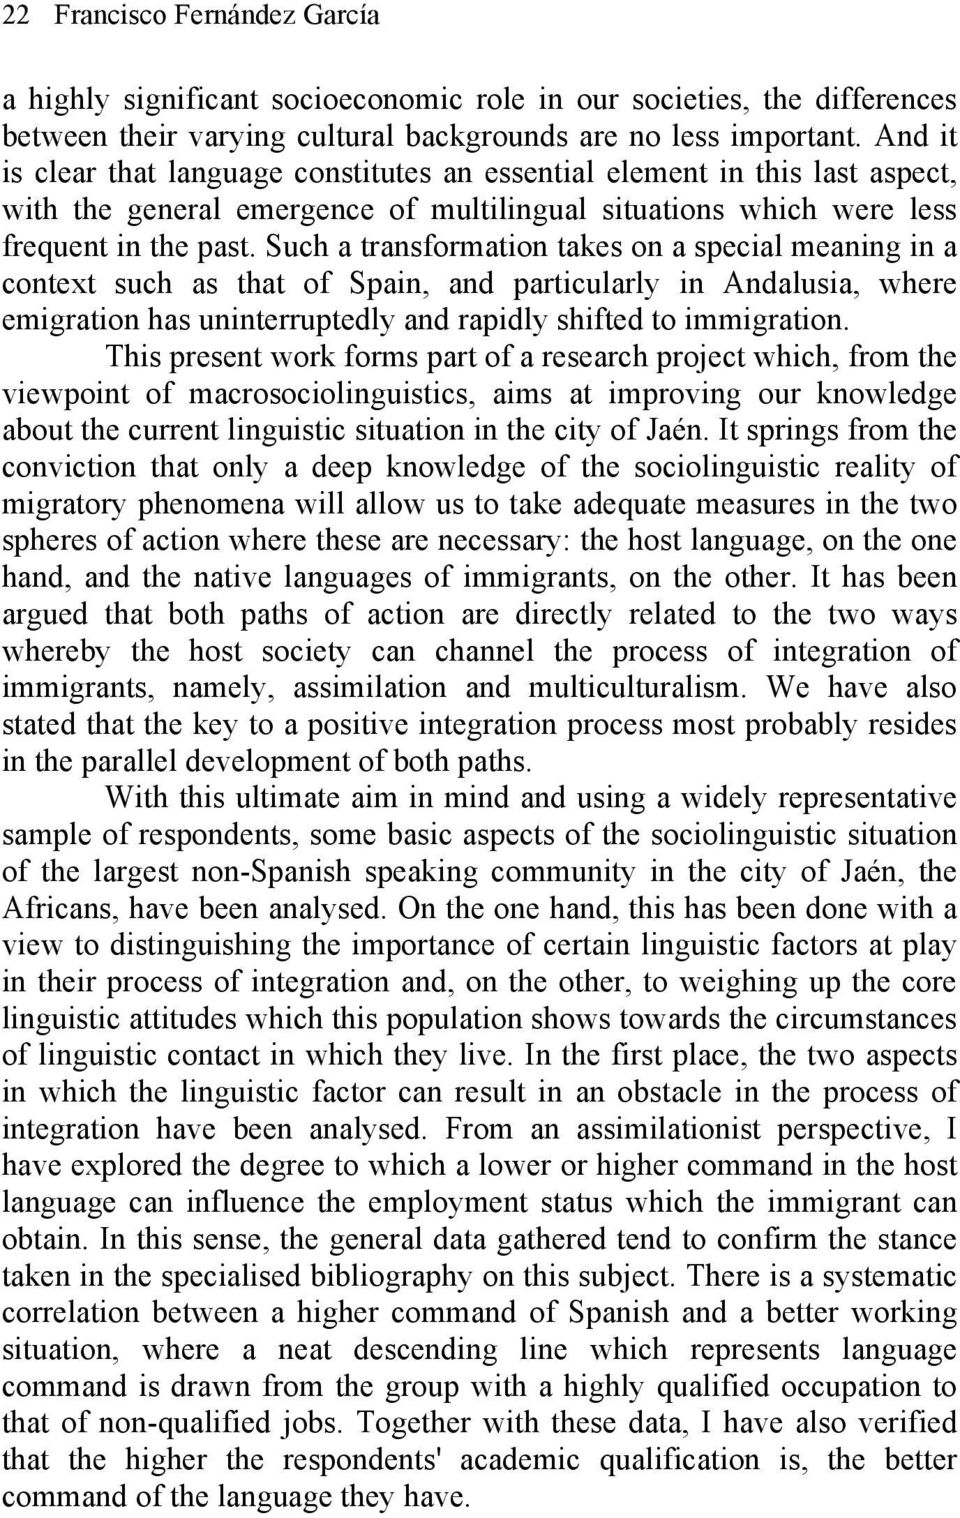 Such a transformation takes on a special meaning in a context such as that of Spain, and particularly in Andalusia, where emigration has uninterruptedly and rapidly shifted to immigration.